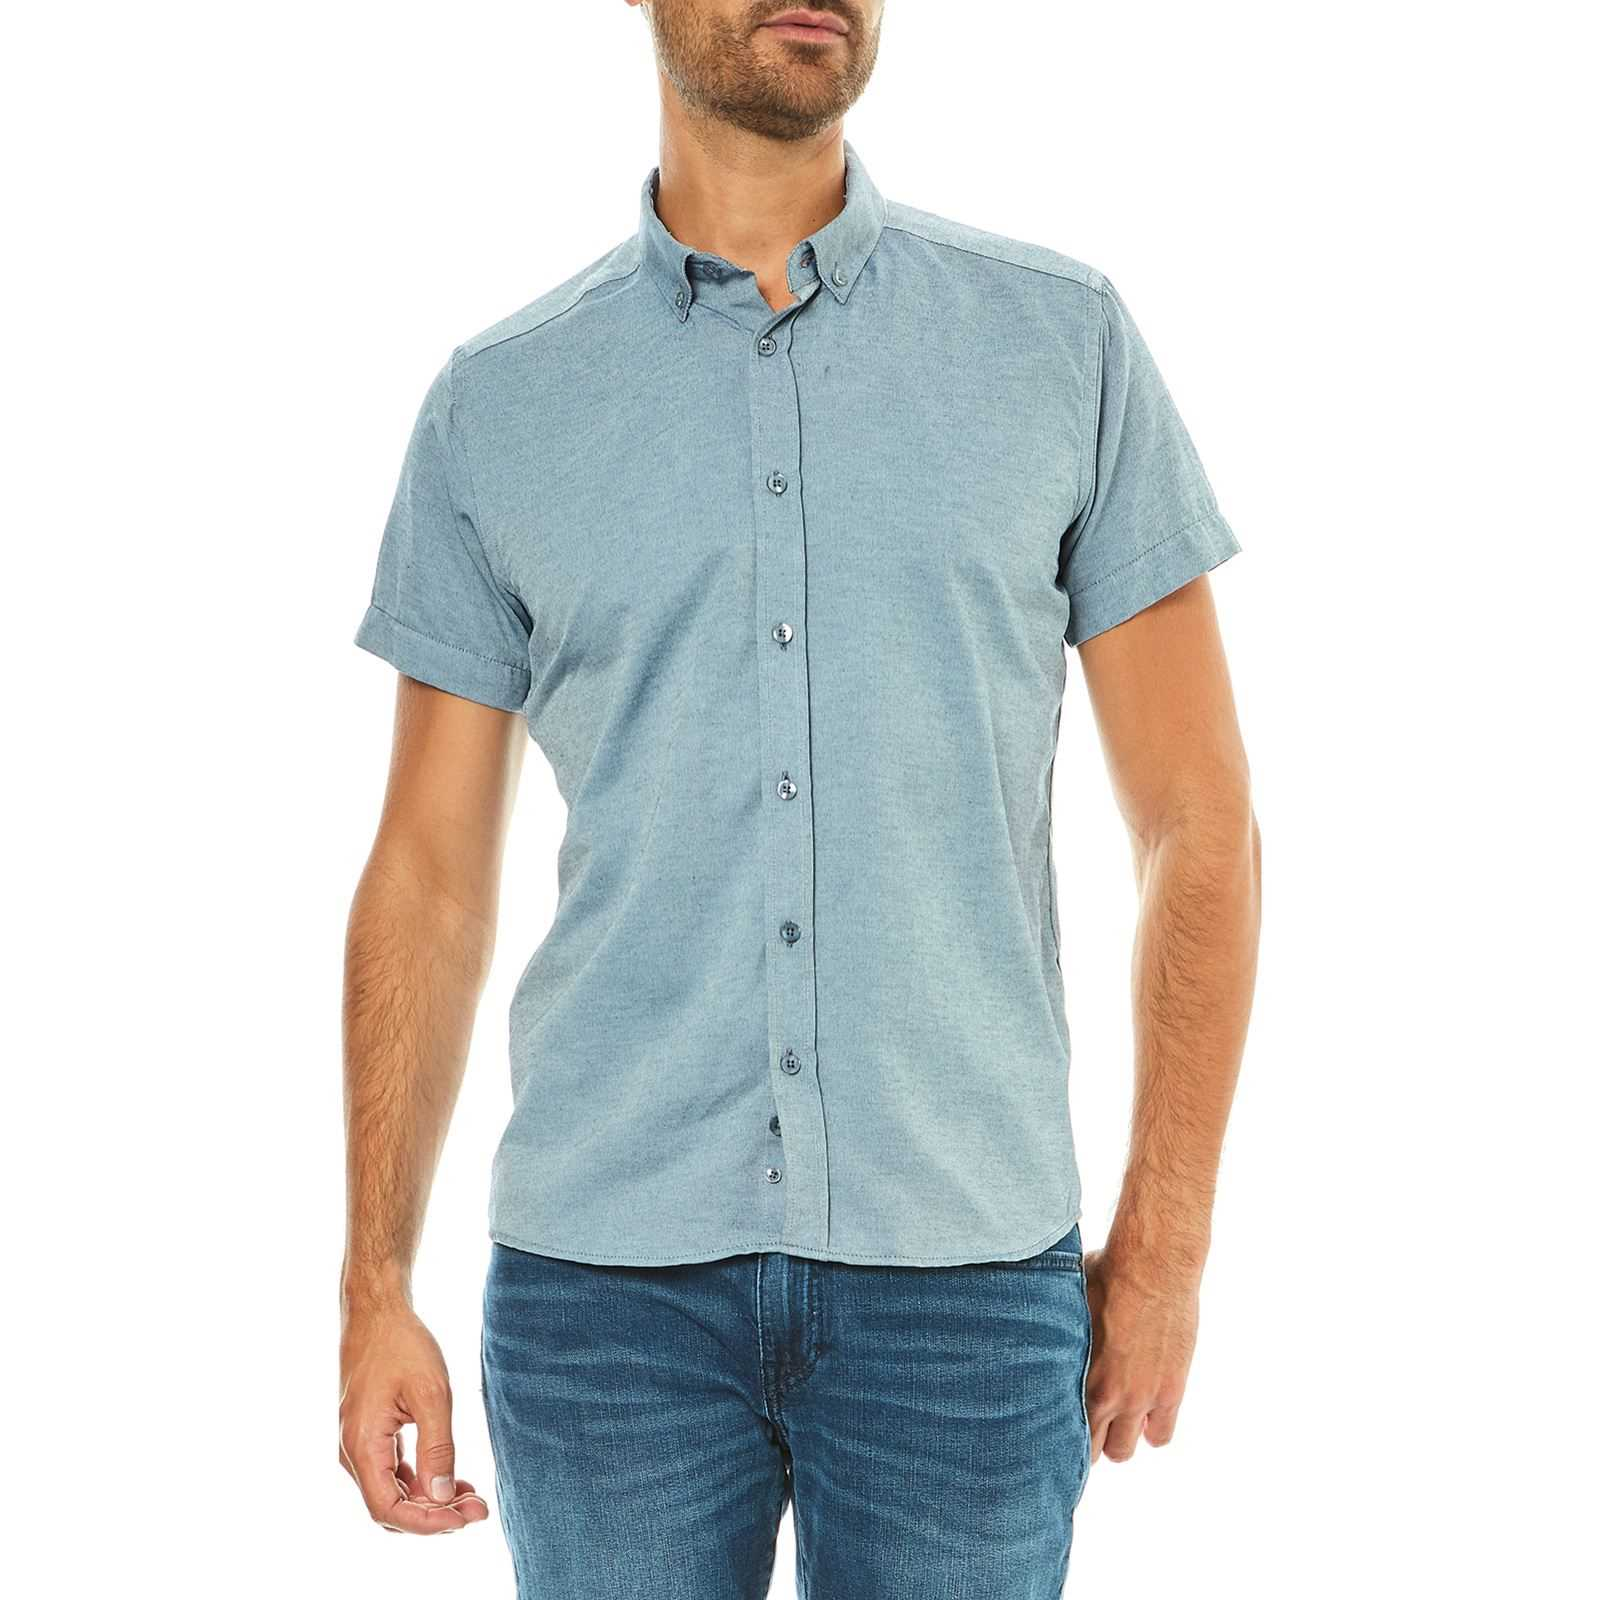 V Clair Manches Courtes Life Homme NagatoChemise Bleu Hope N nkOP80w